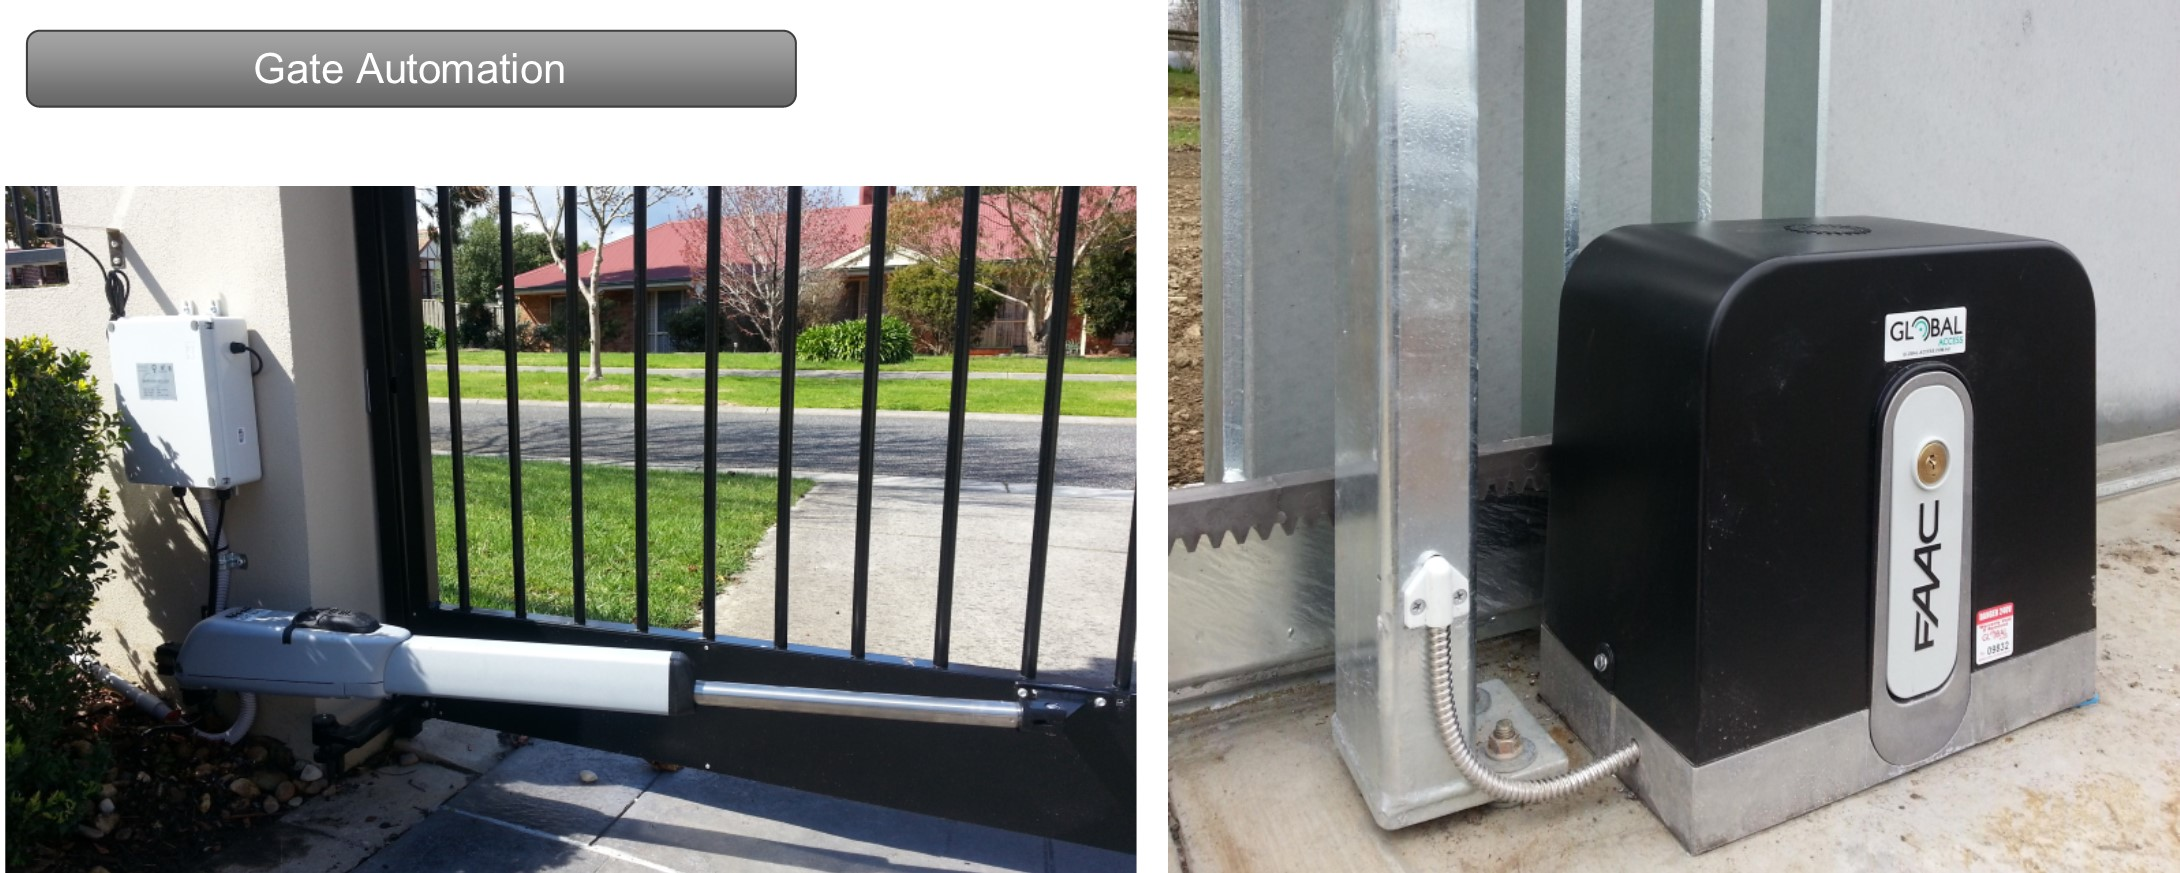 Automatic gatesFrom not having to physically open and close your gate, to securely protecting your property by controlling entry and exits, an automatic gate is the perfect solution for many residential and commercial properties.